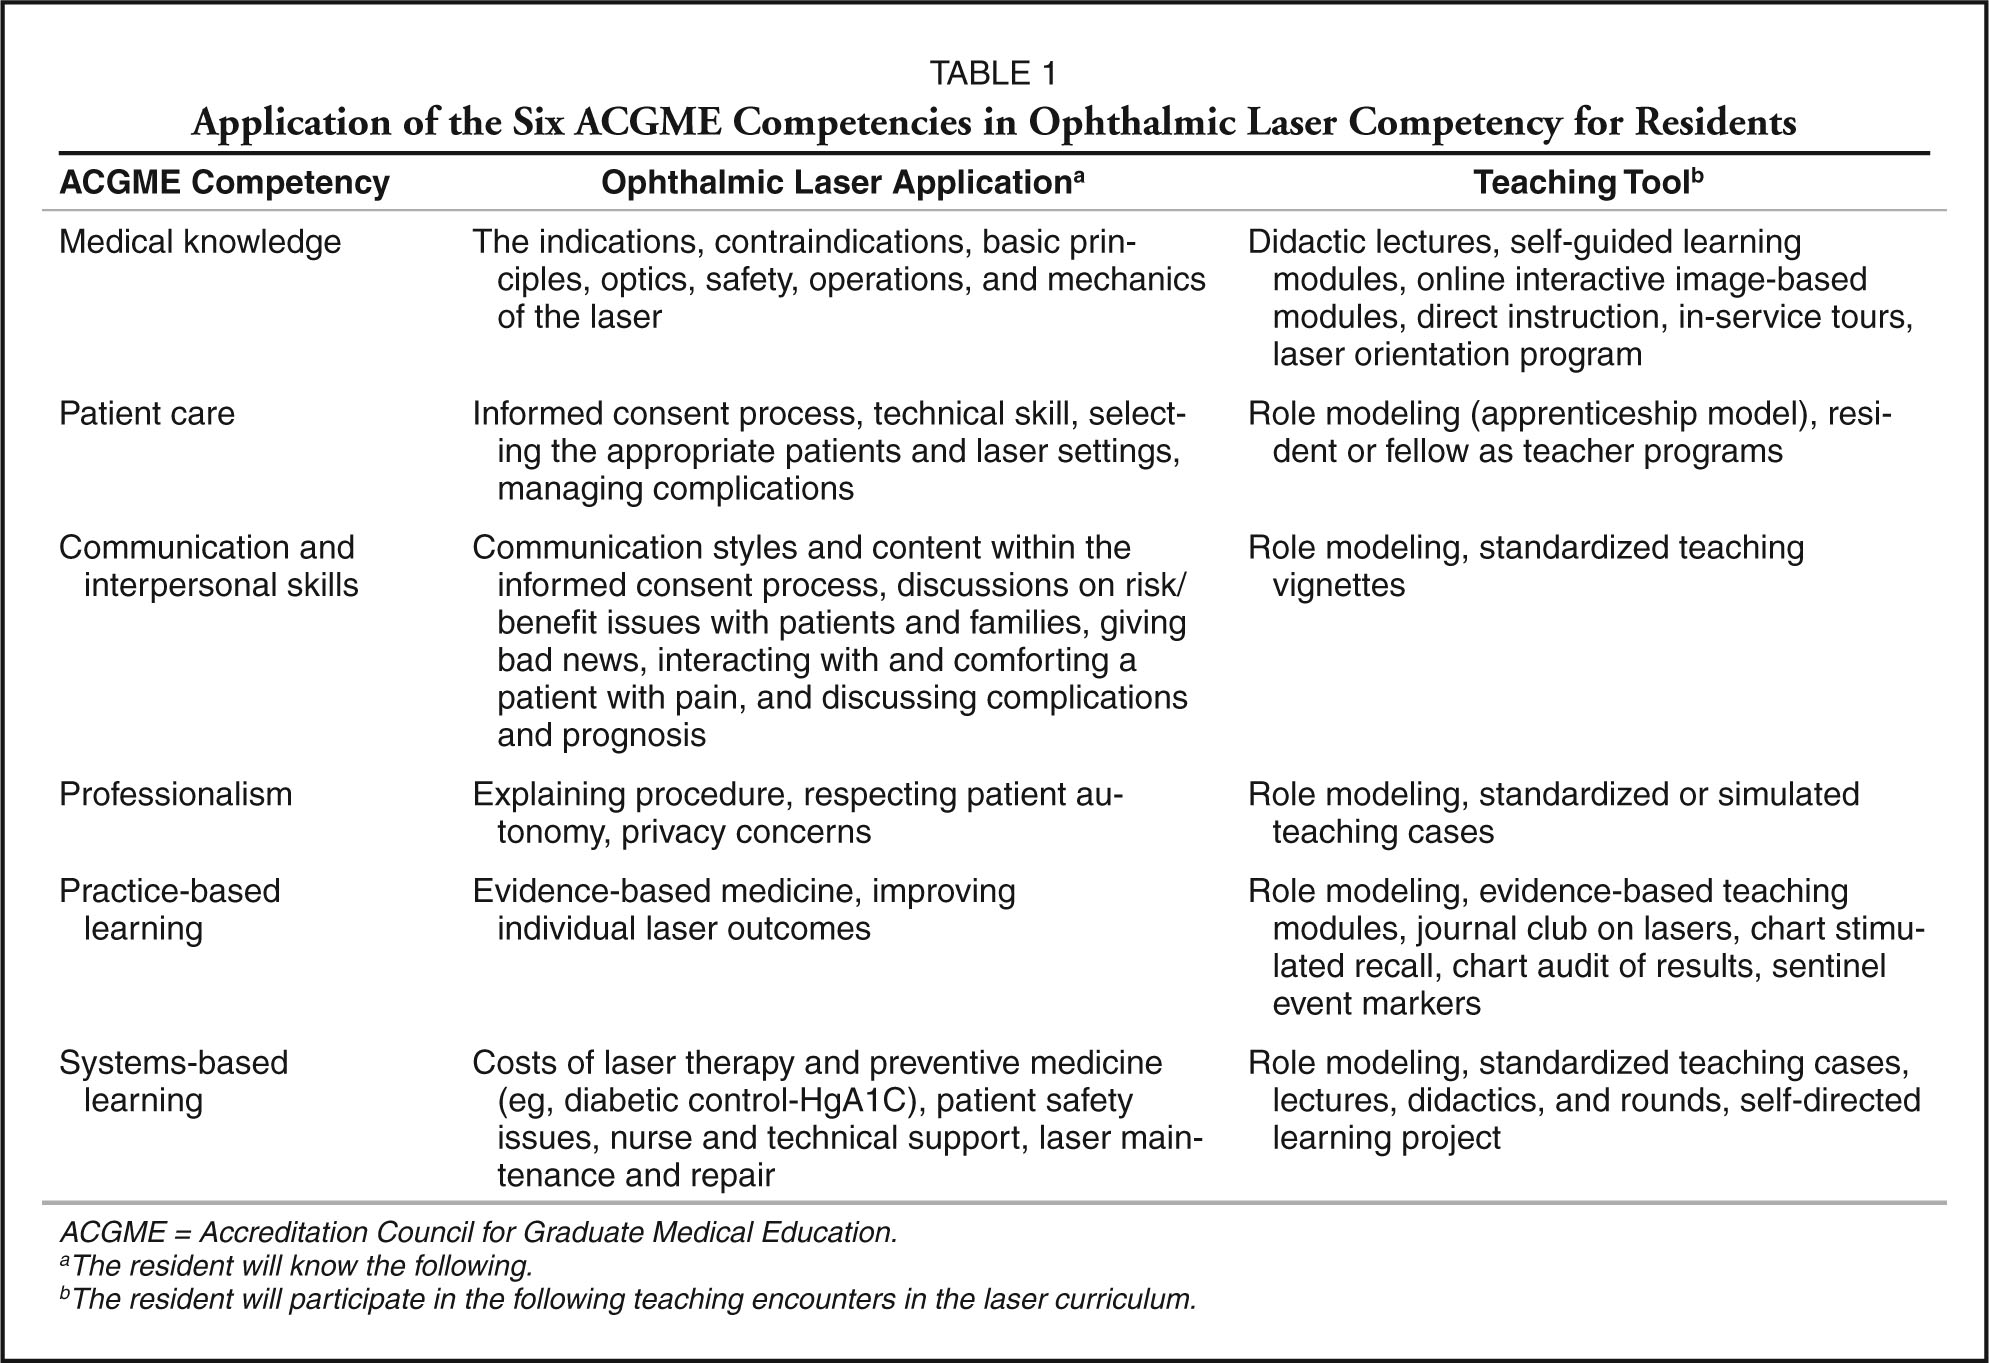 teaching and assessing competency in retinal lasers in application of the six acgme competencies in ophthalmic laser competency for residents